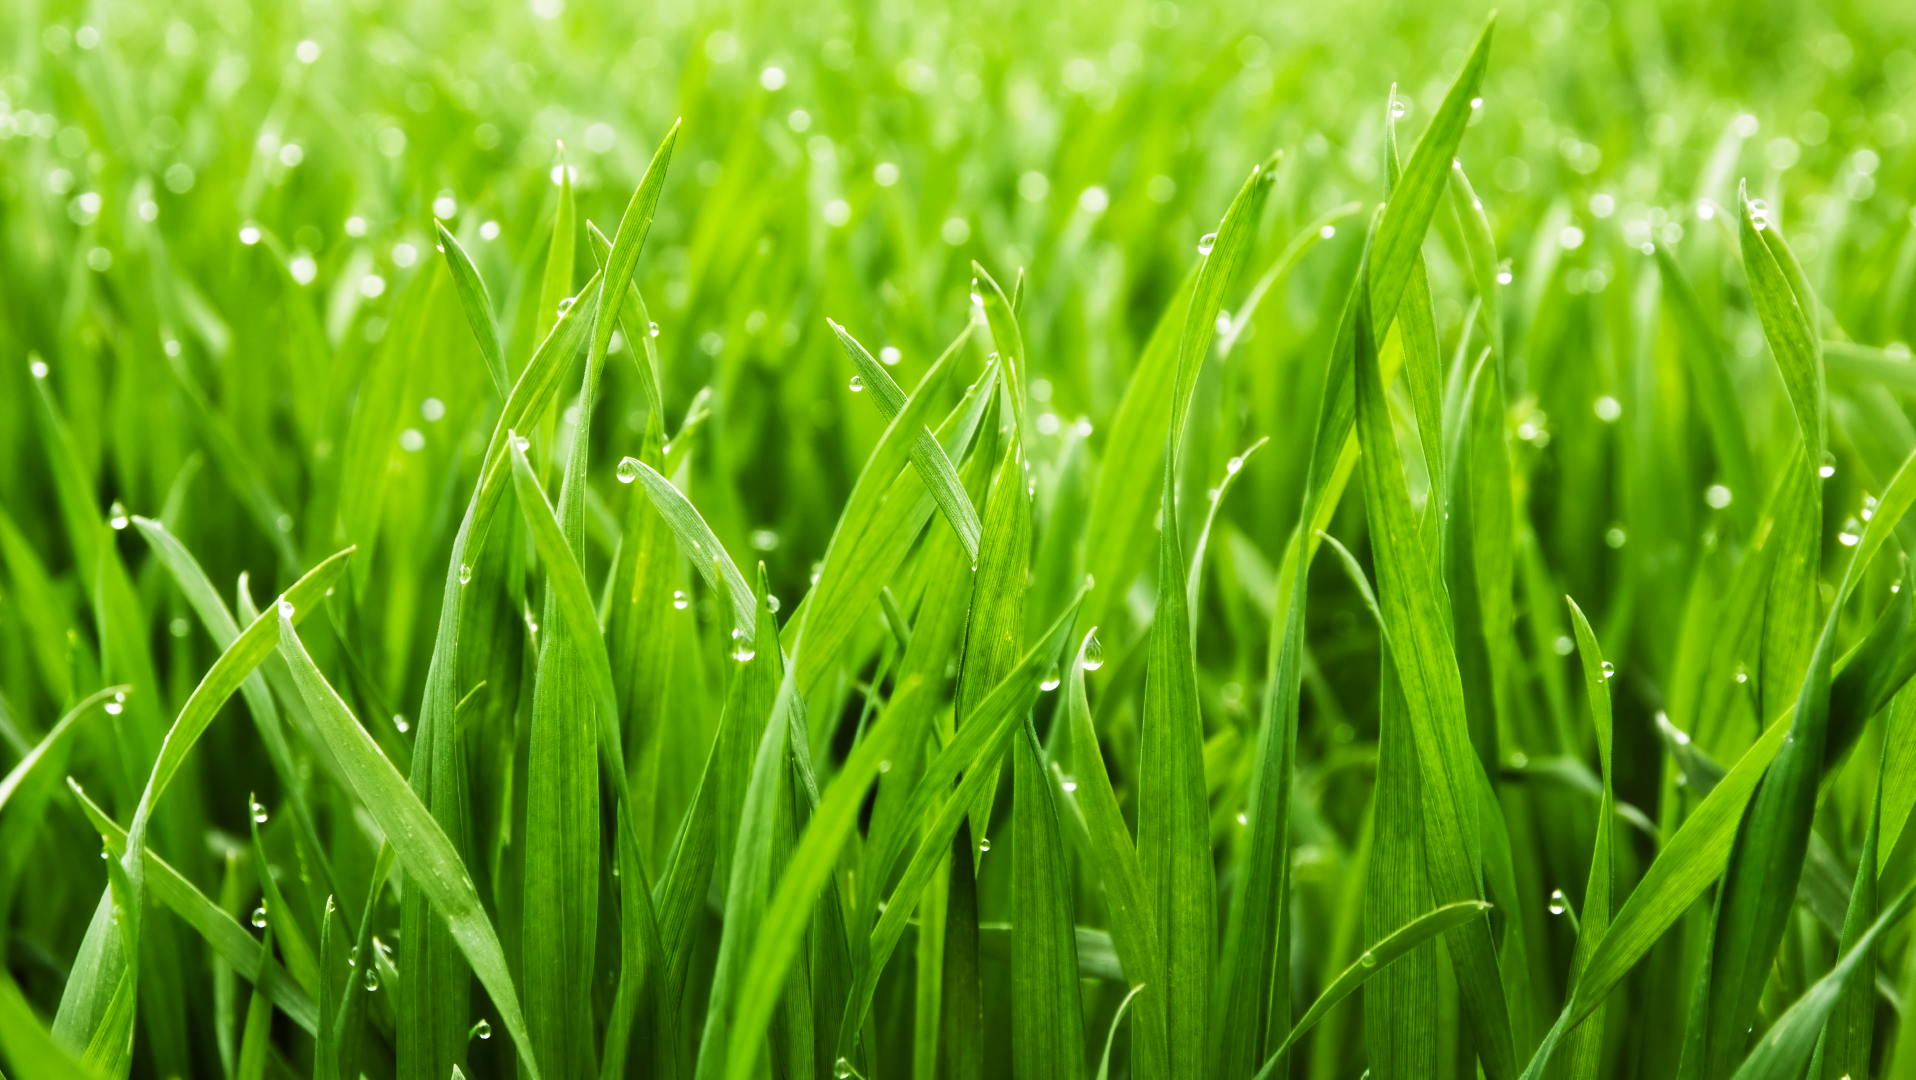 dew on grass tips